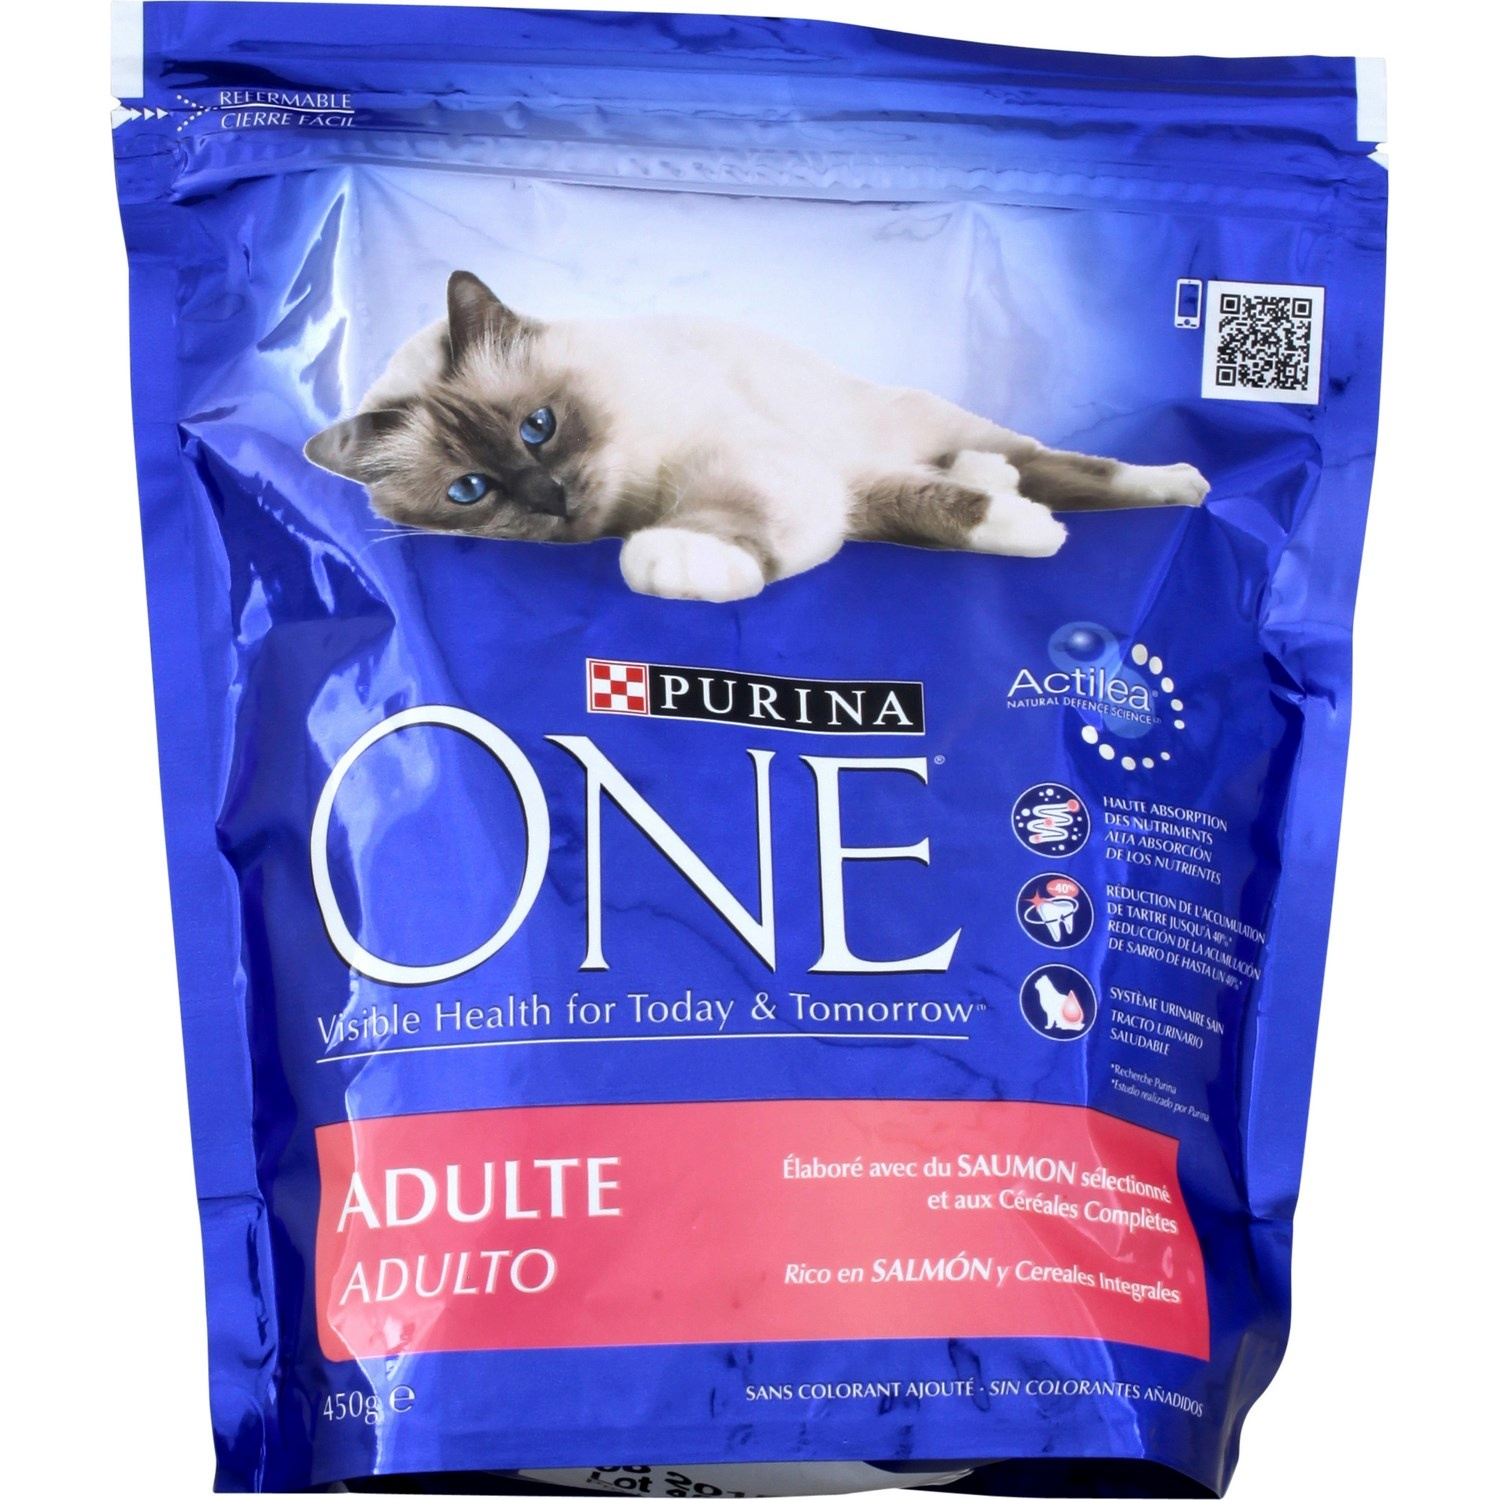 croquettes pour chat au saumon purina one 450 g la belle vie grande picerie fine et fraiche. Black Bedroom Furniture Sets. Home Design Ideas